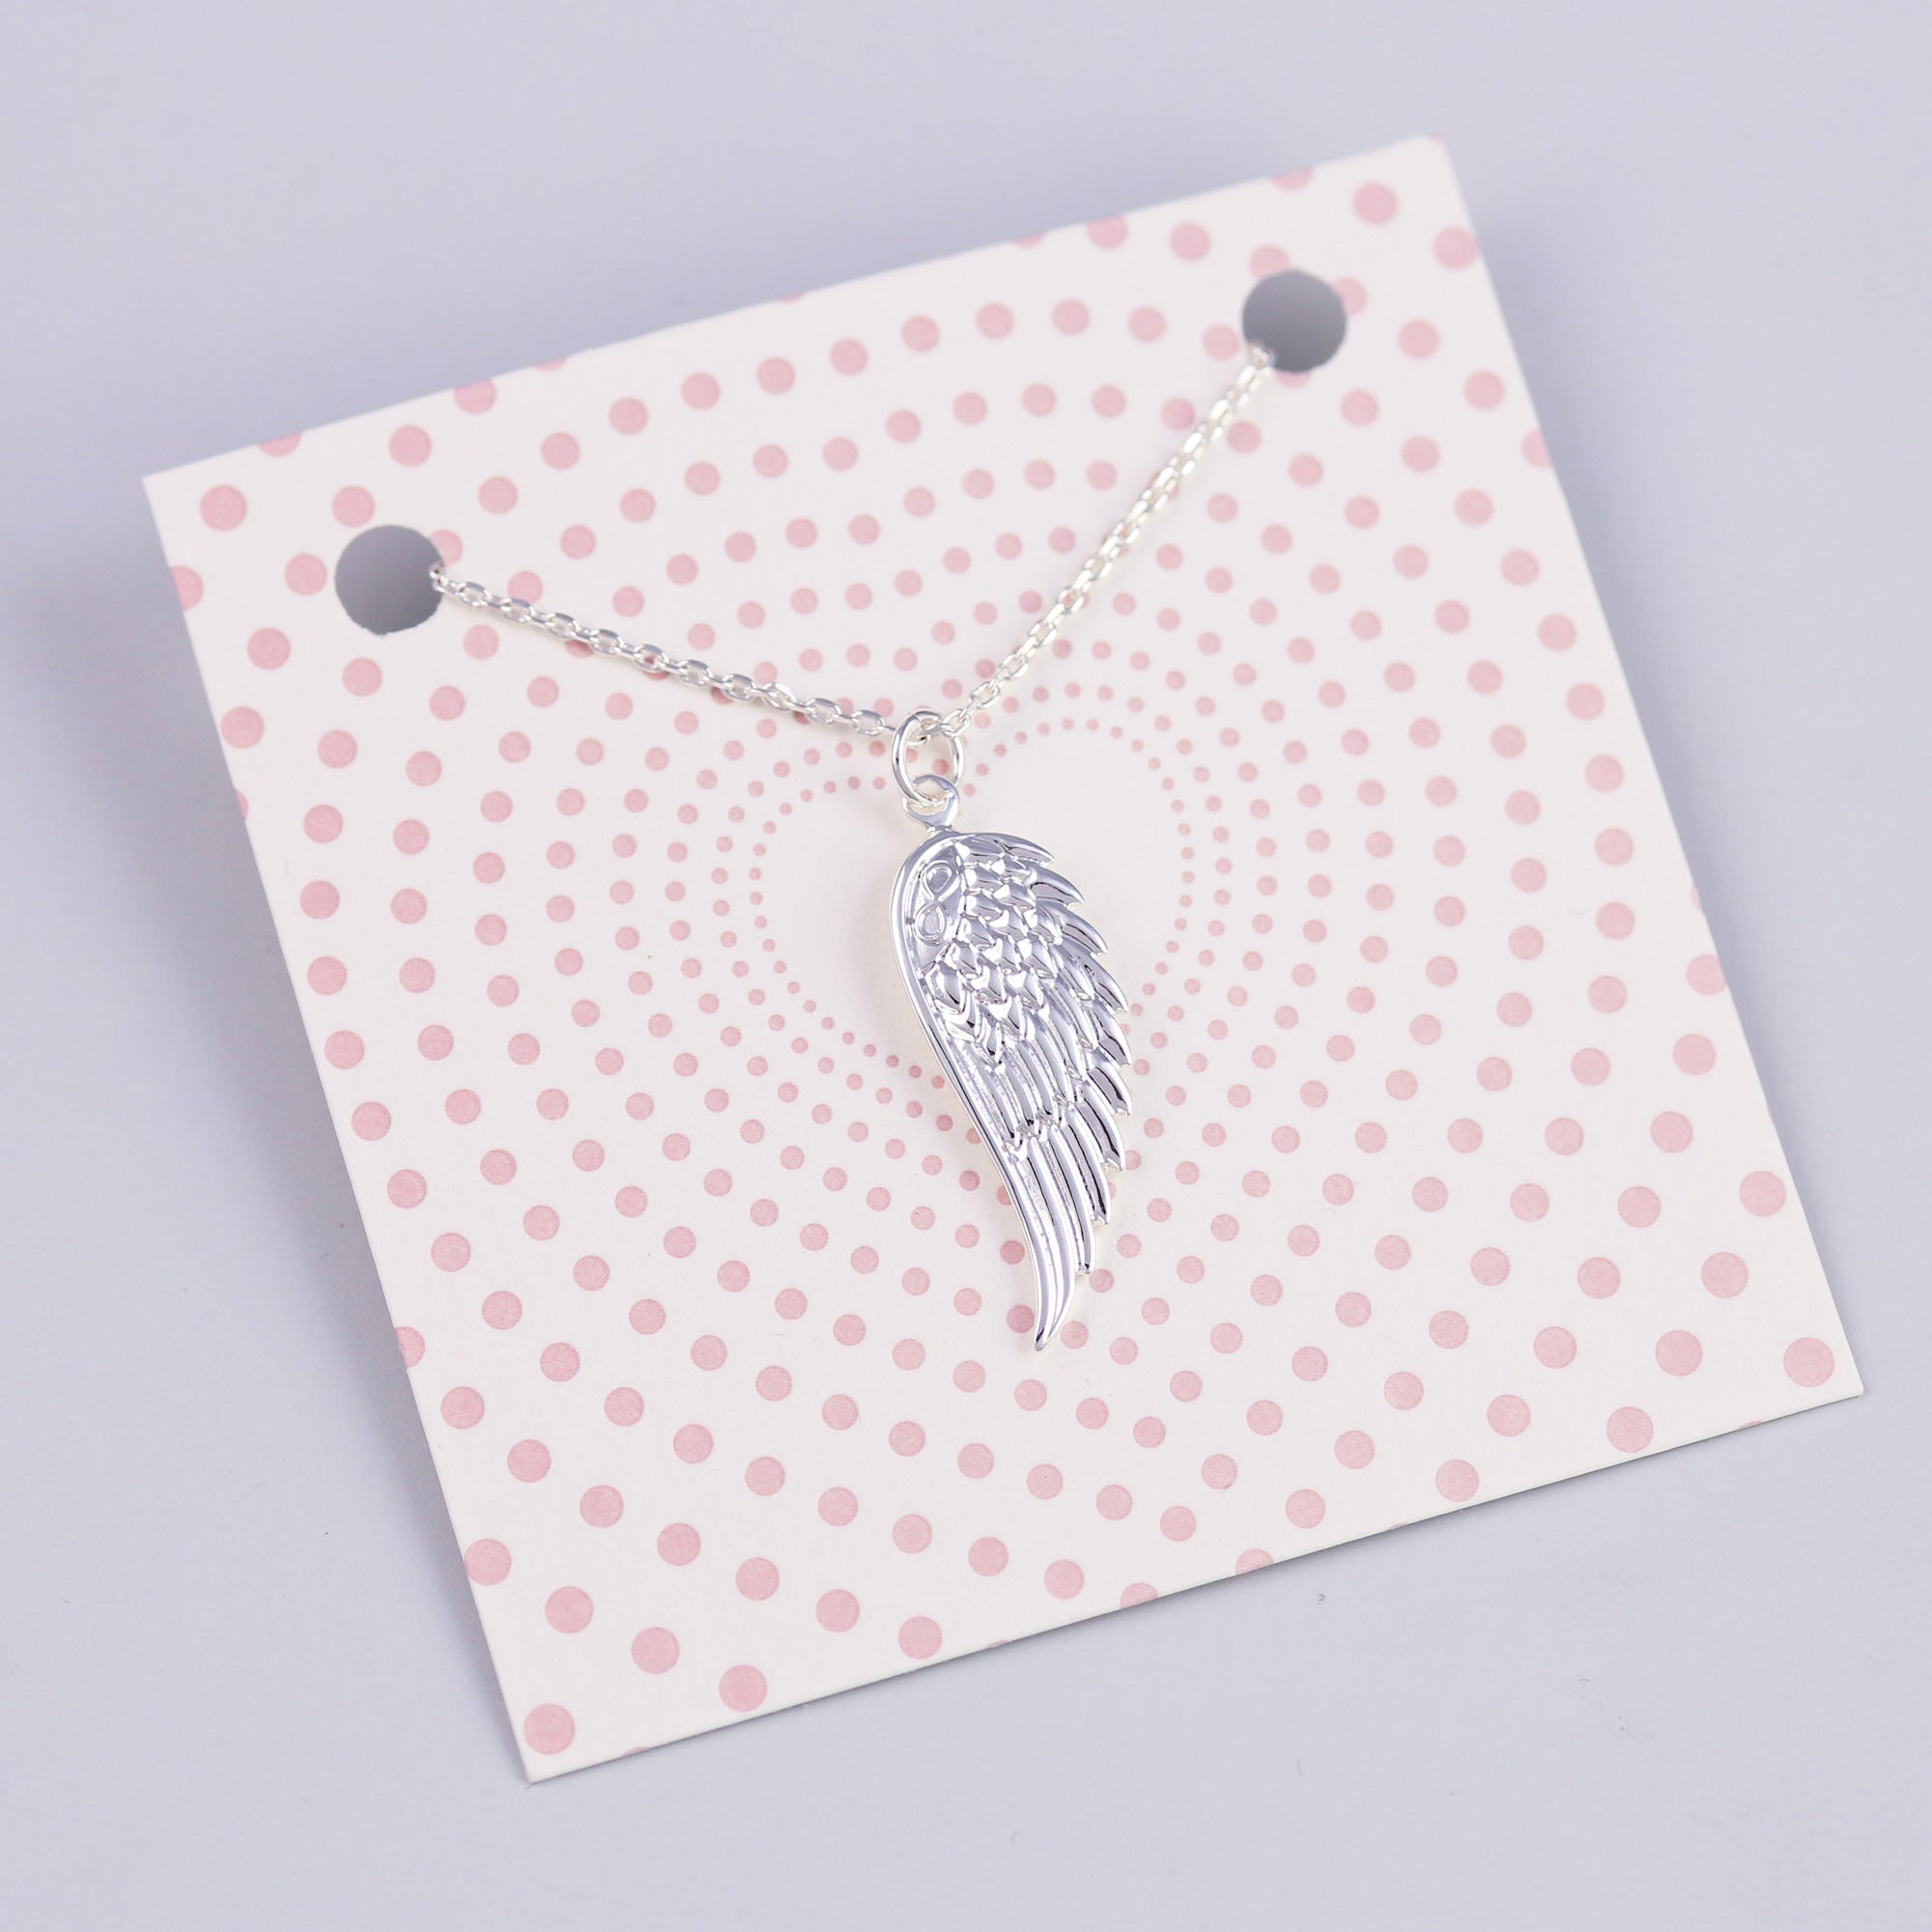 Dotty Heart Card with Silver Angel Wing Necklace